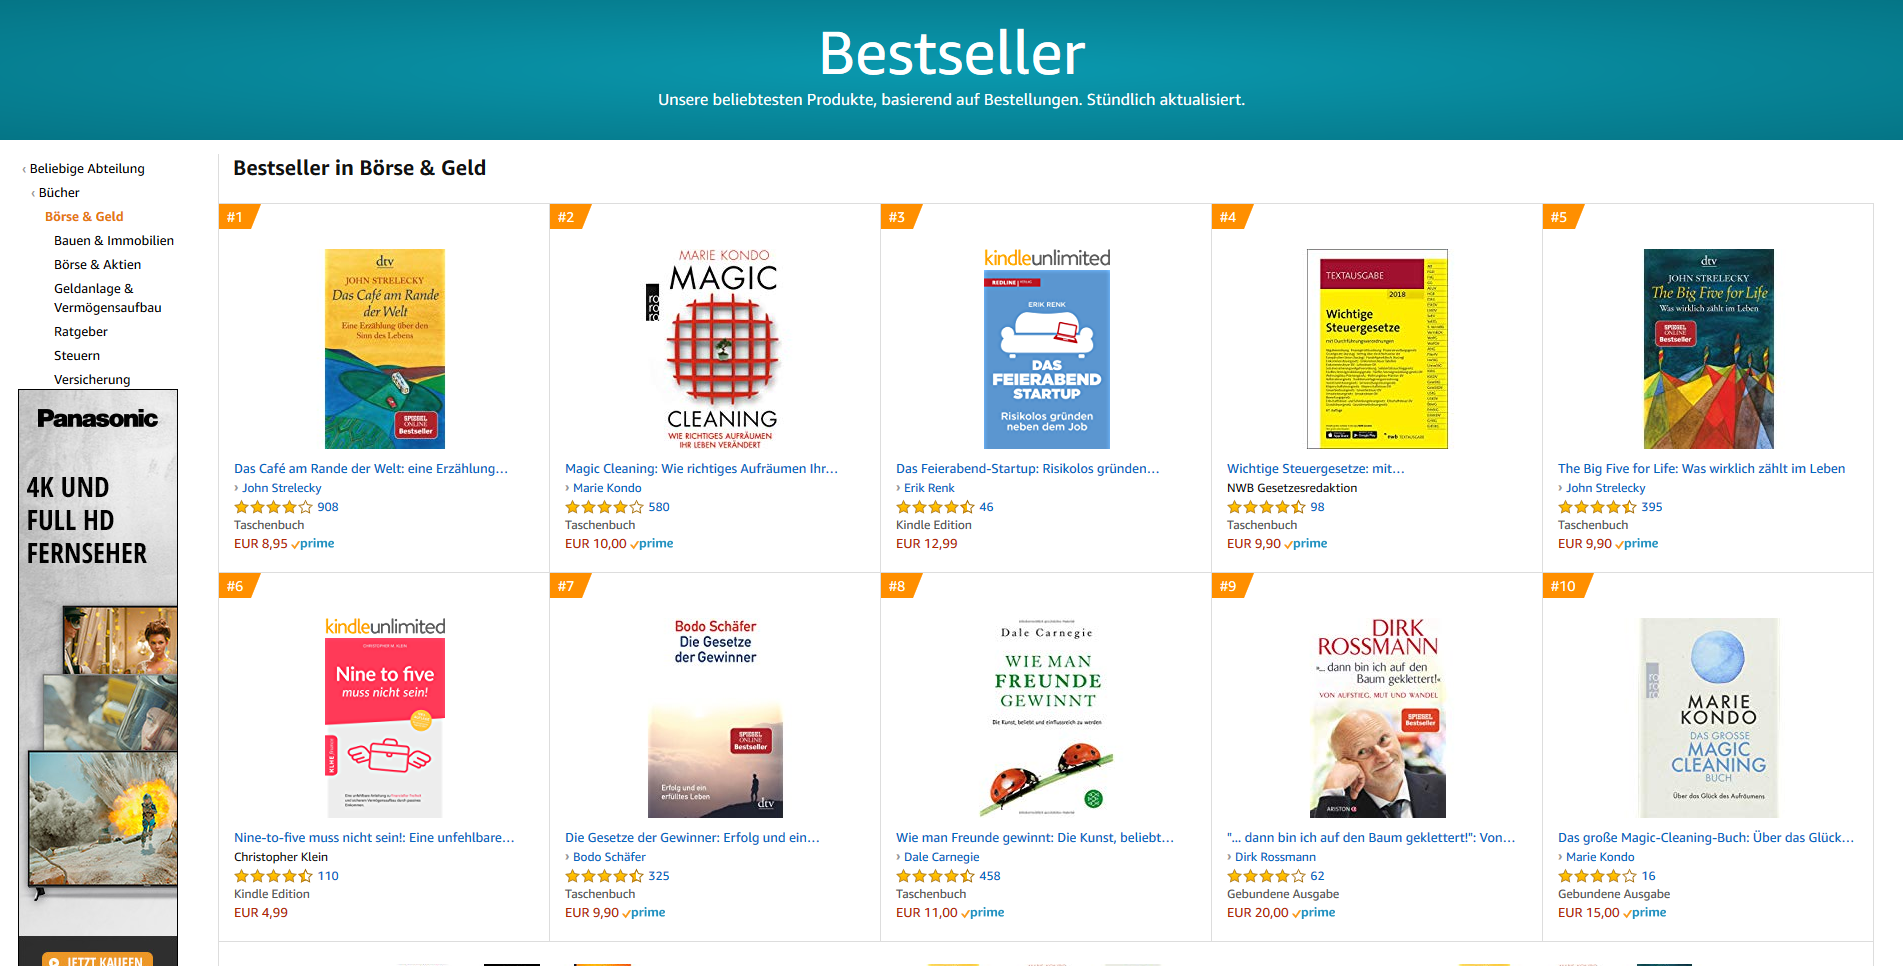 Bestseller in Investmentfonds